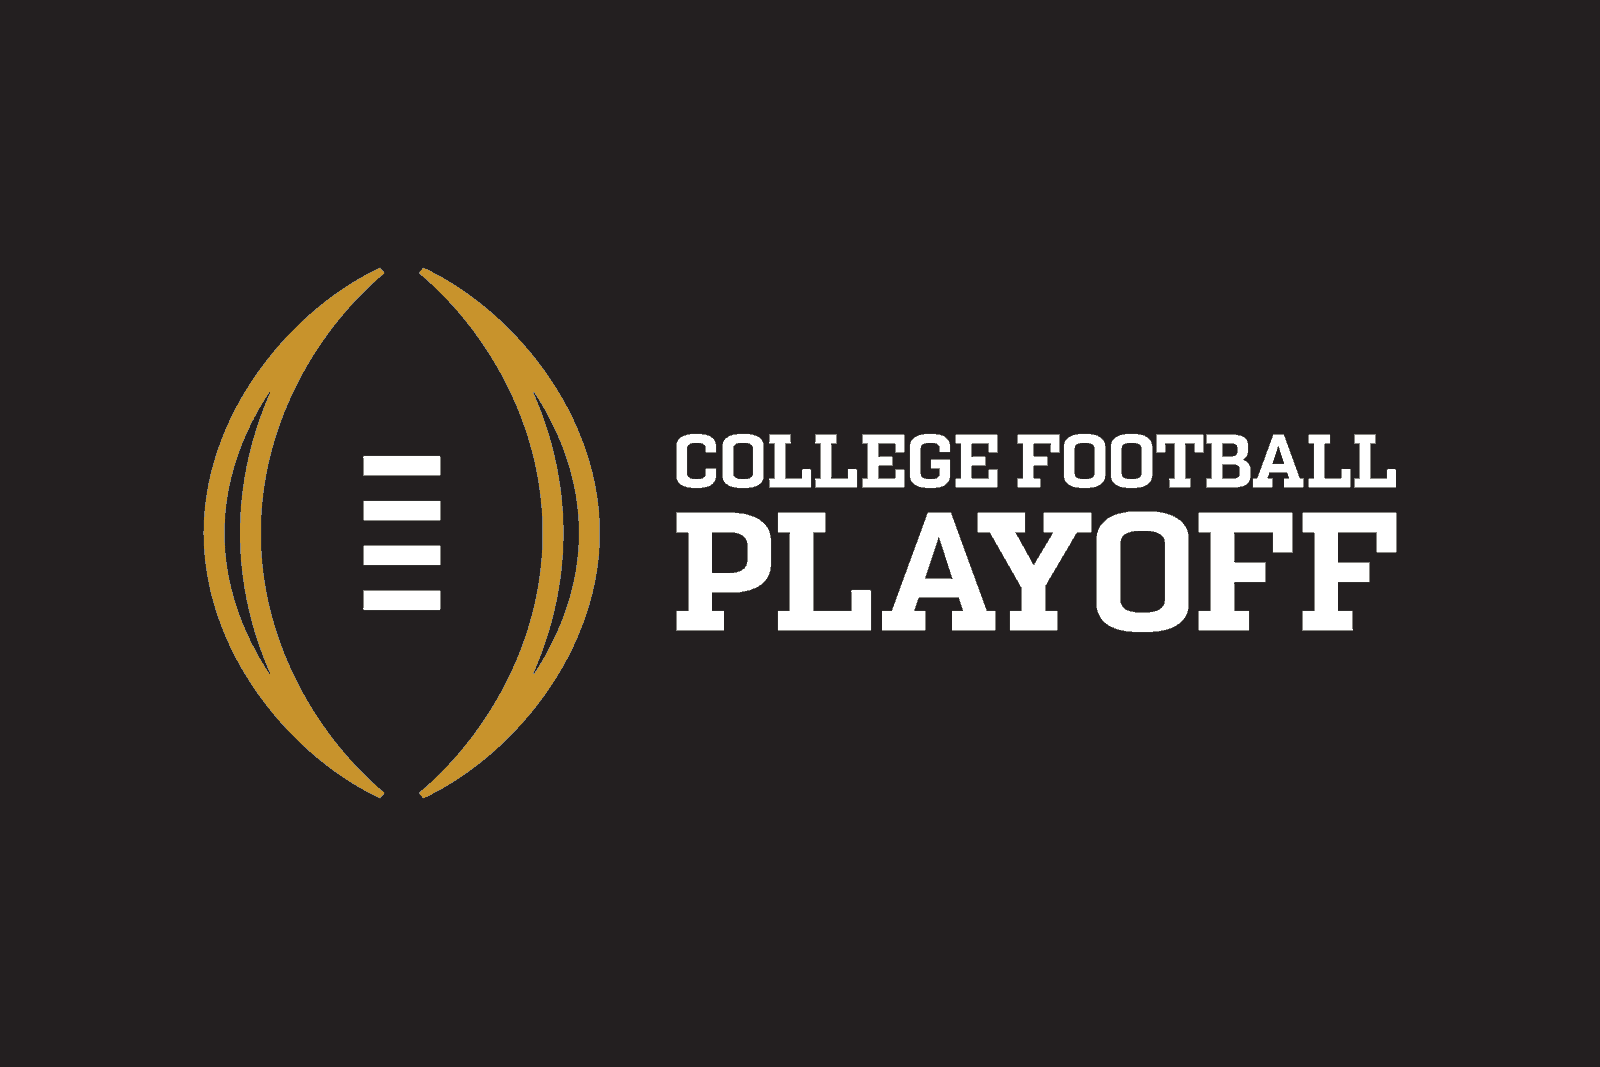 The College Football Playoff can expand the right way.